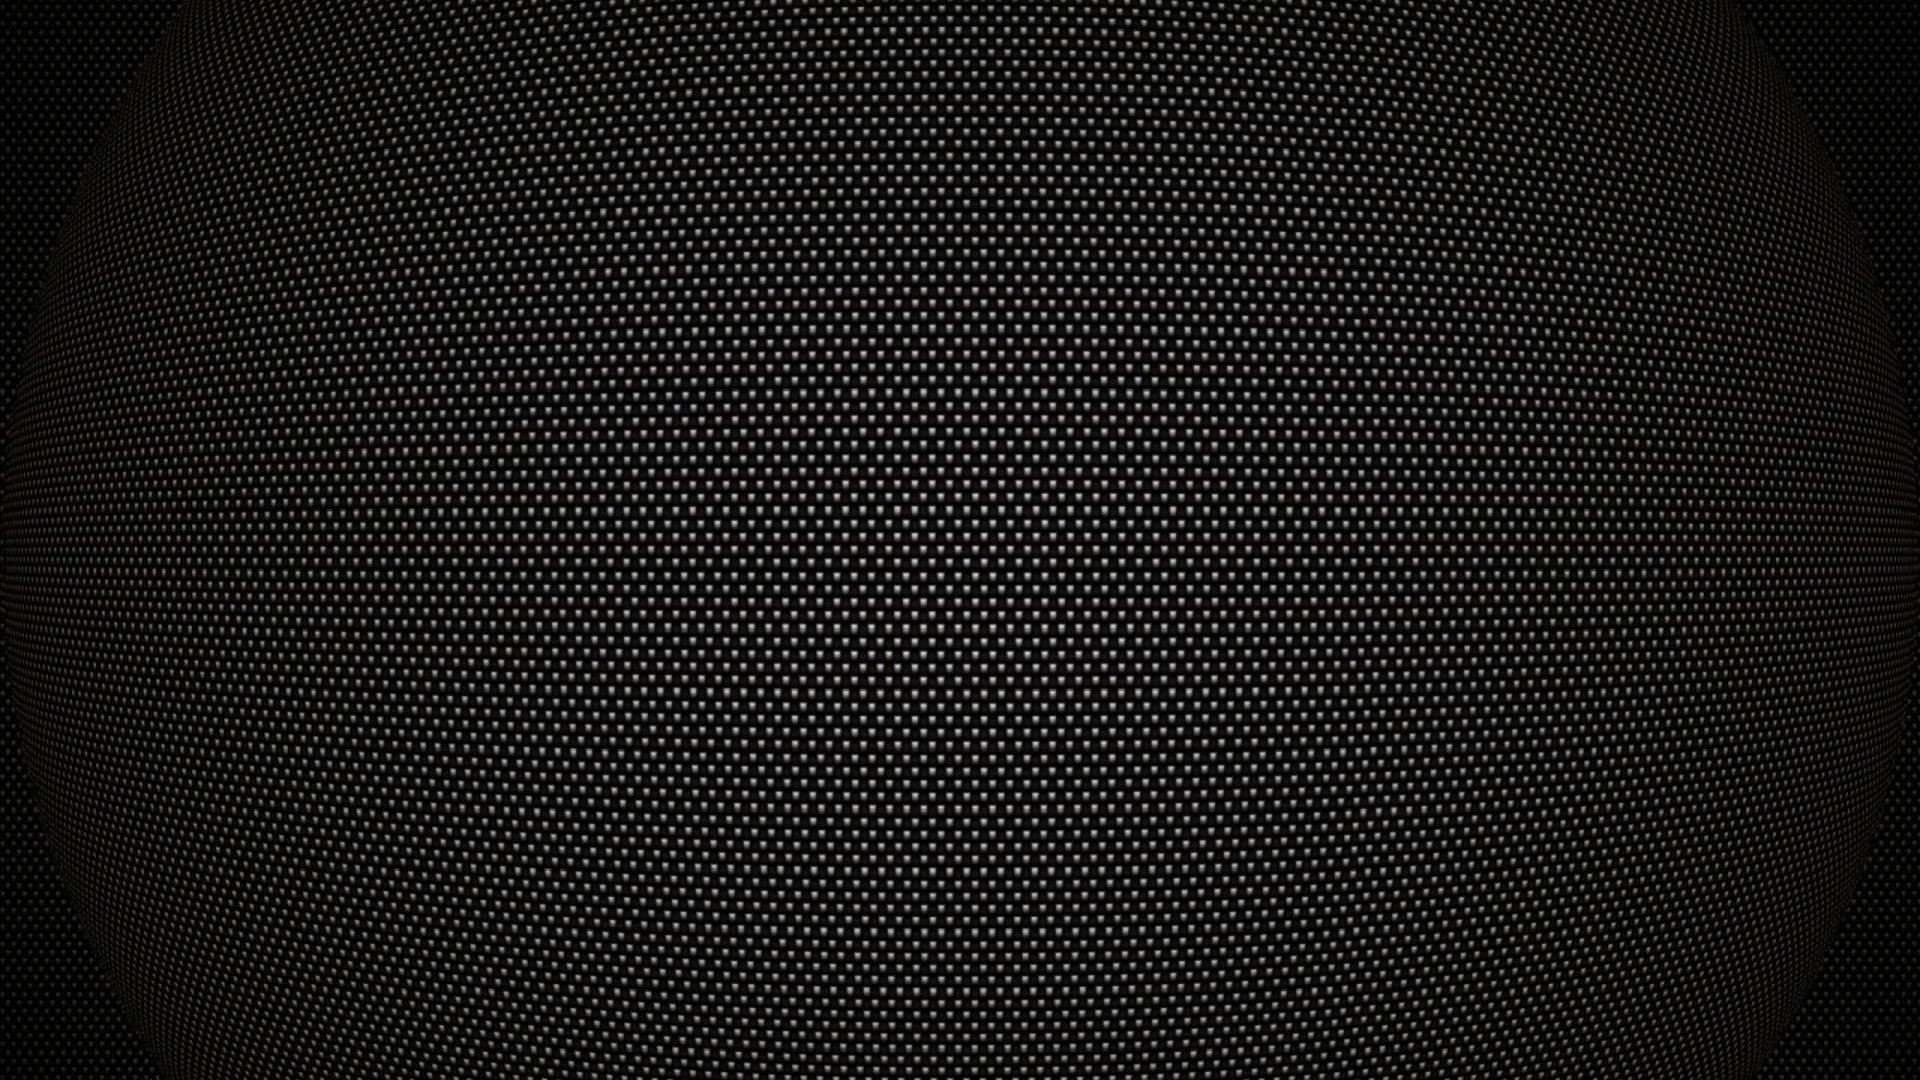 … Plain Black Wallpapers Hd Wallpapersafari. Download